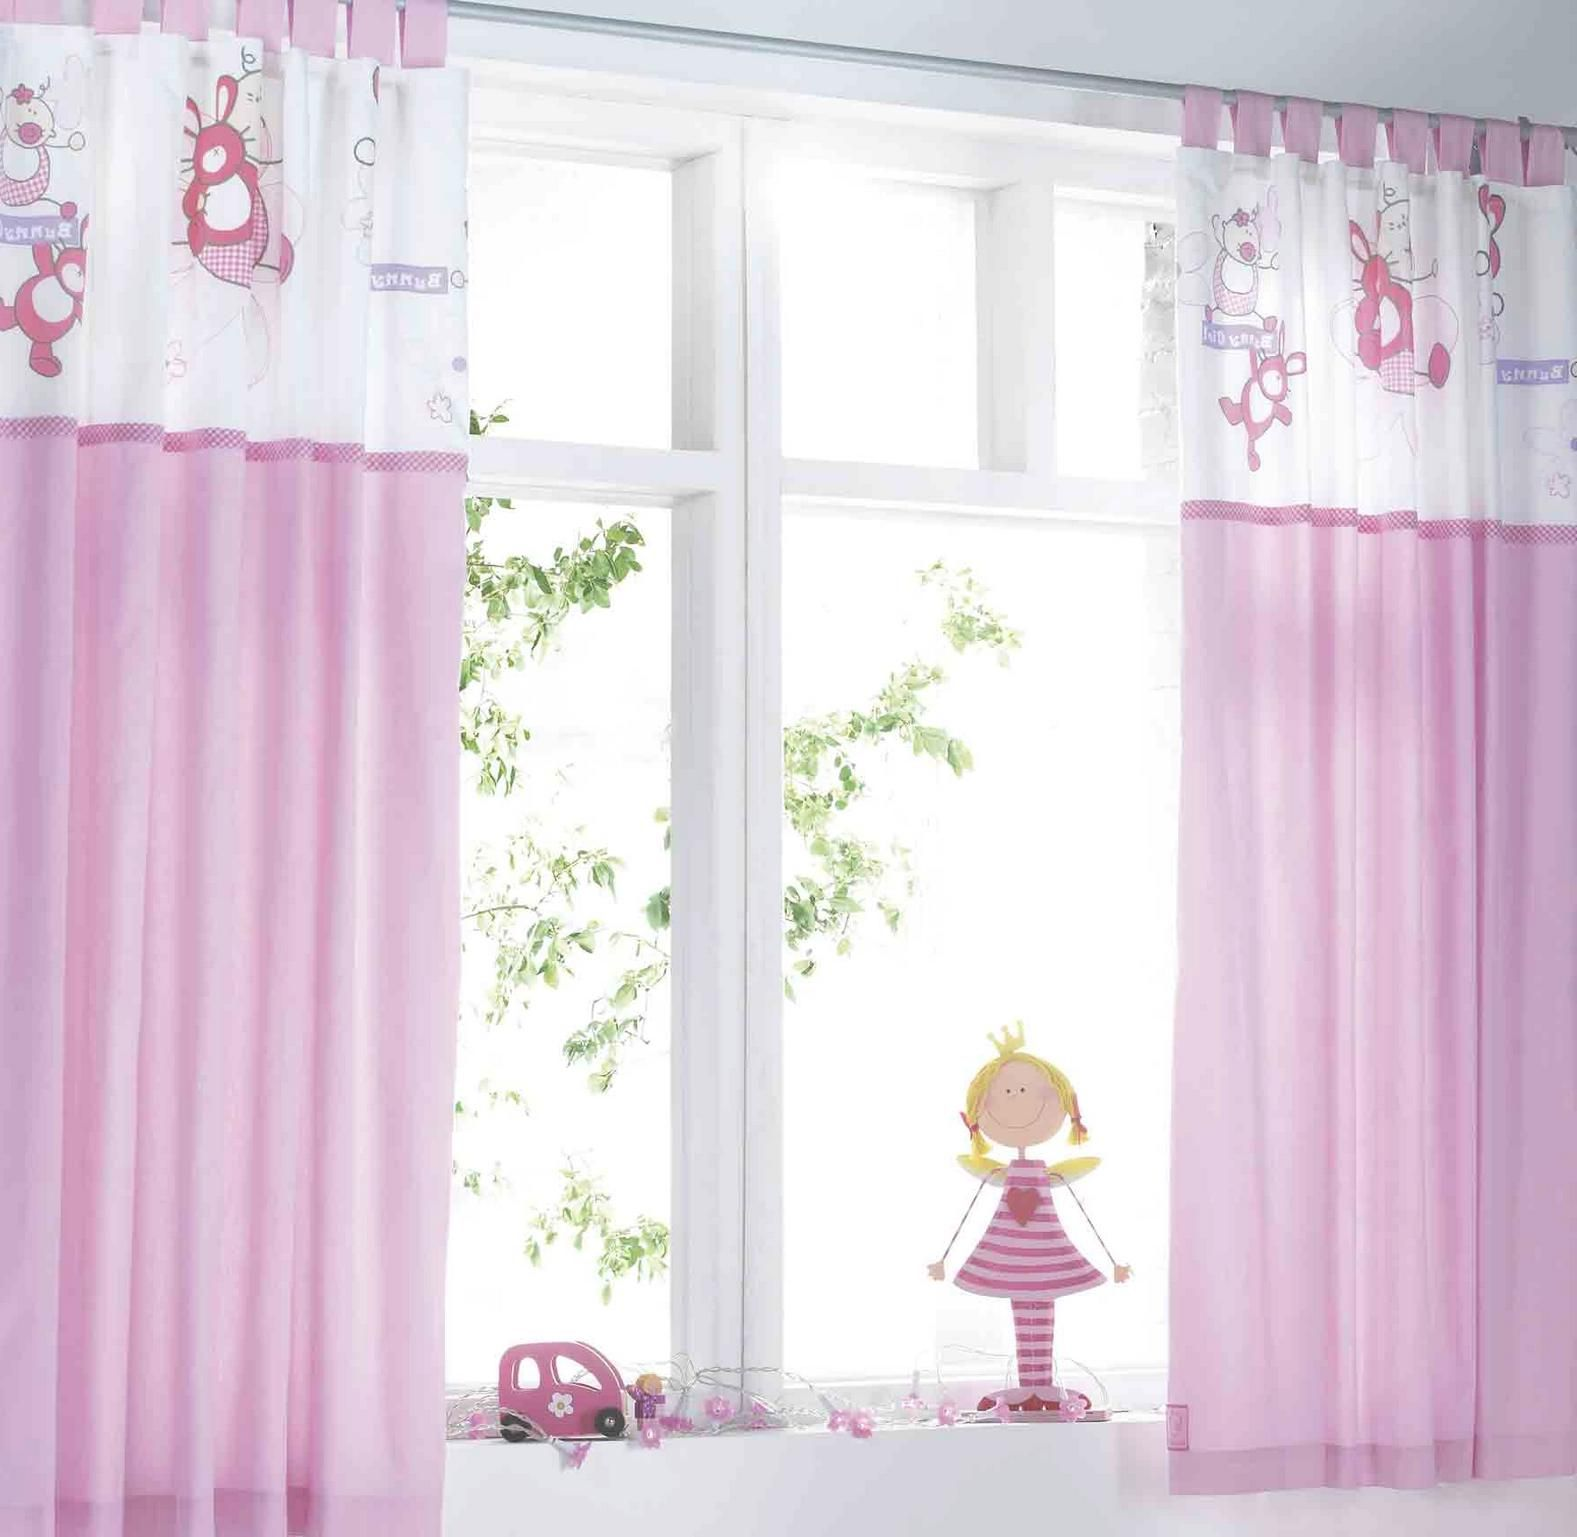 Kids room bee motive kids room curtains for girl with white and much purple underneath